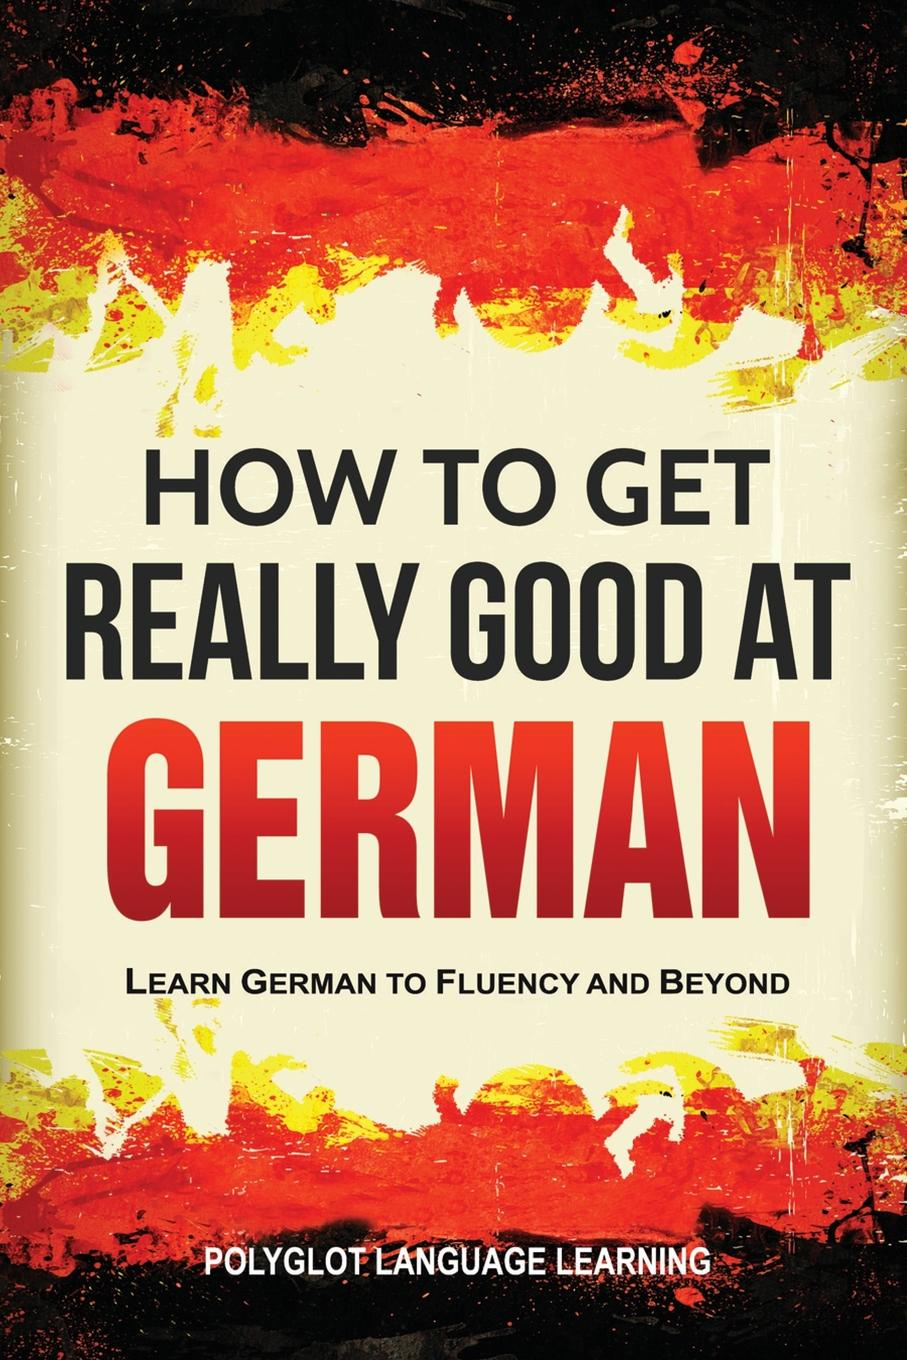 Language Learning Polyglot How to Get Really Good at German. Learn German to Fluency and Beyond andrey ermoshin learn languages easily methods of self regulation for successful learning